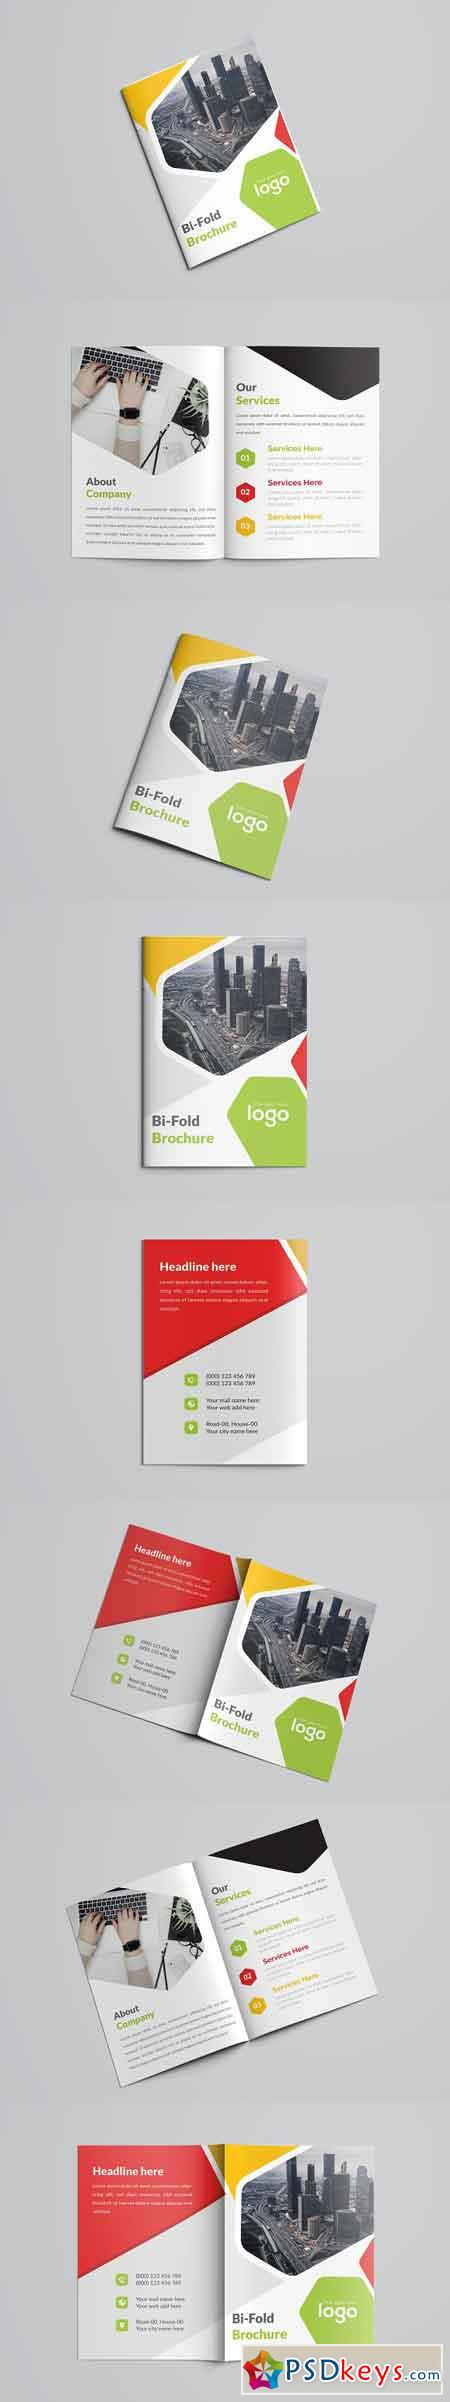 Colorful Business Bifold Brochure 2632891